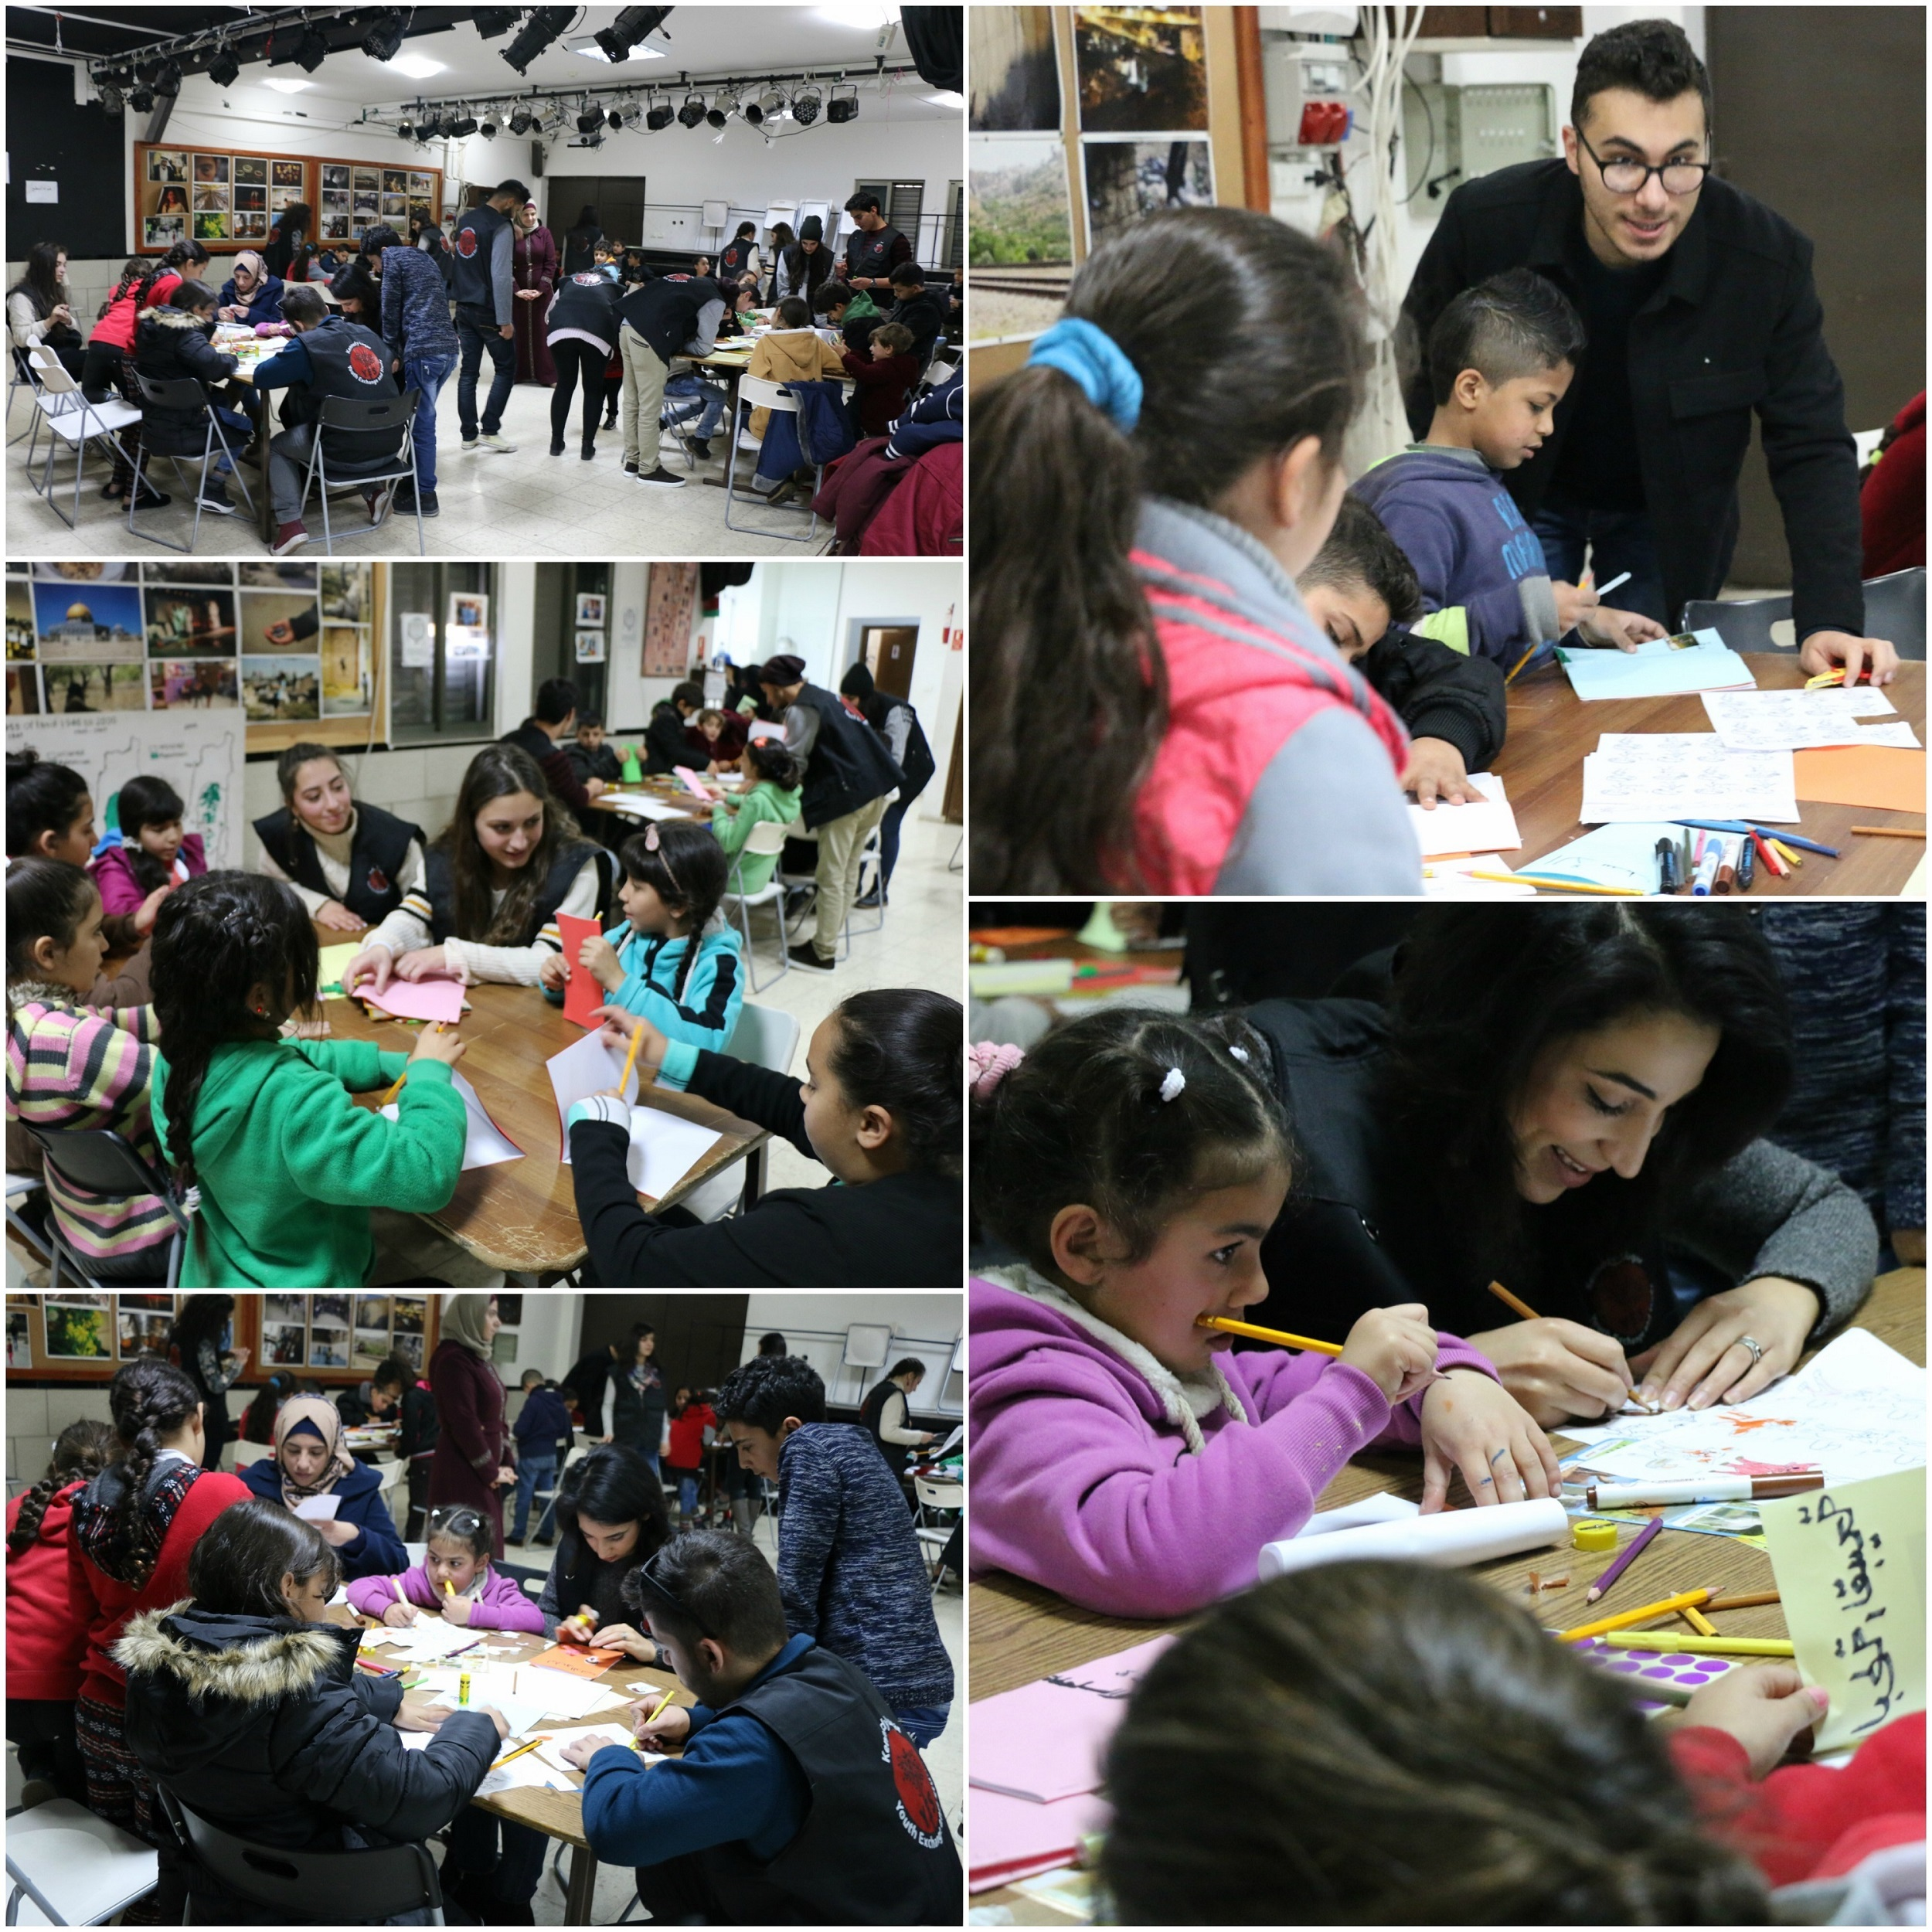 The Kids Working On Creating Their Short Stories While The Alumni Help Them With Whatever They Need